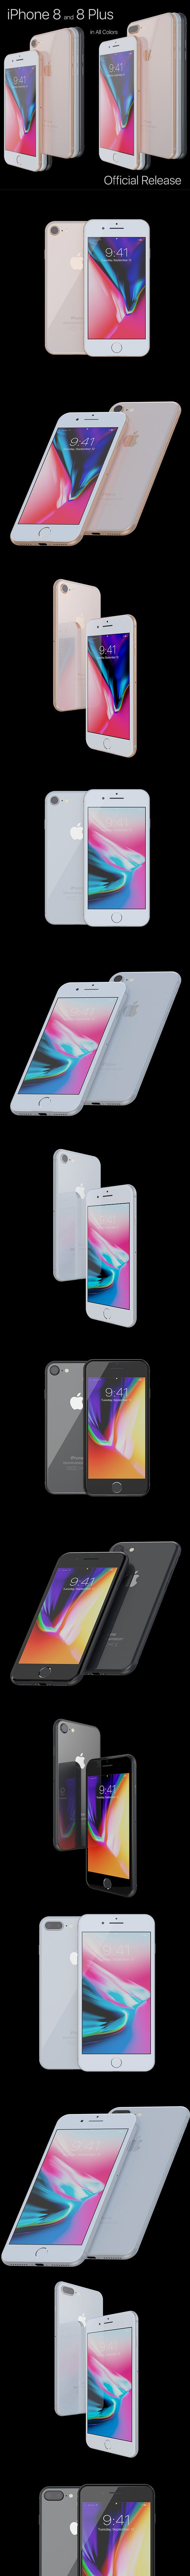 Apple iPhone 8 and 8 Plus Collection - 3DOcean Item for Sale